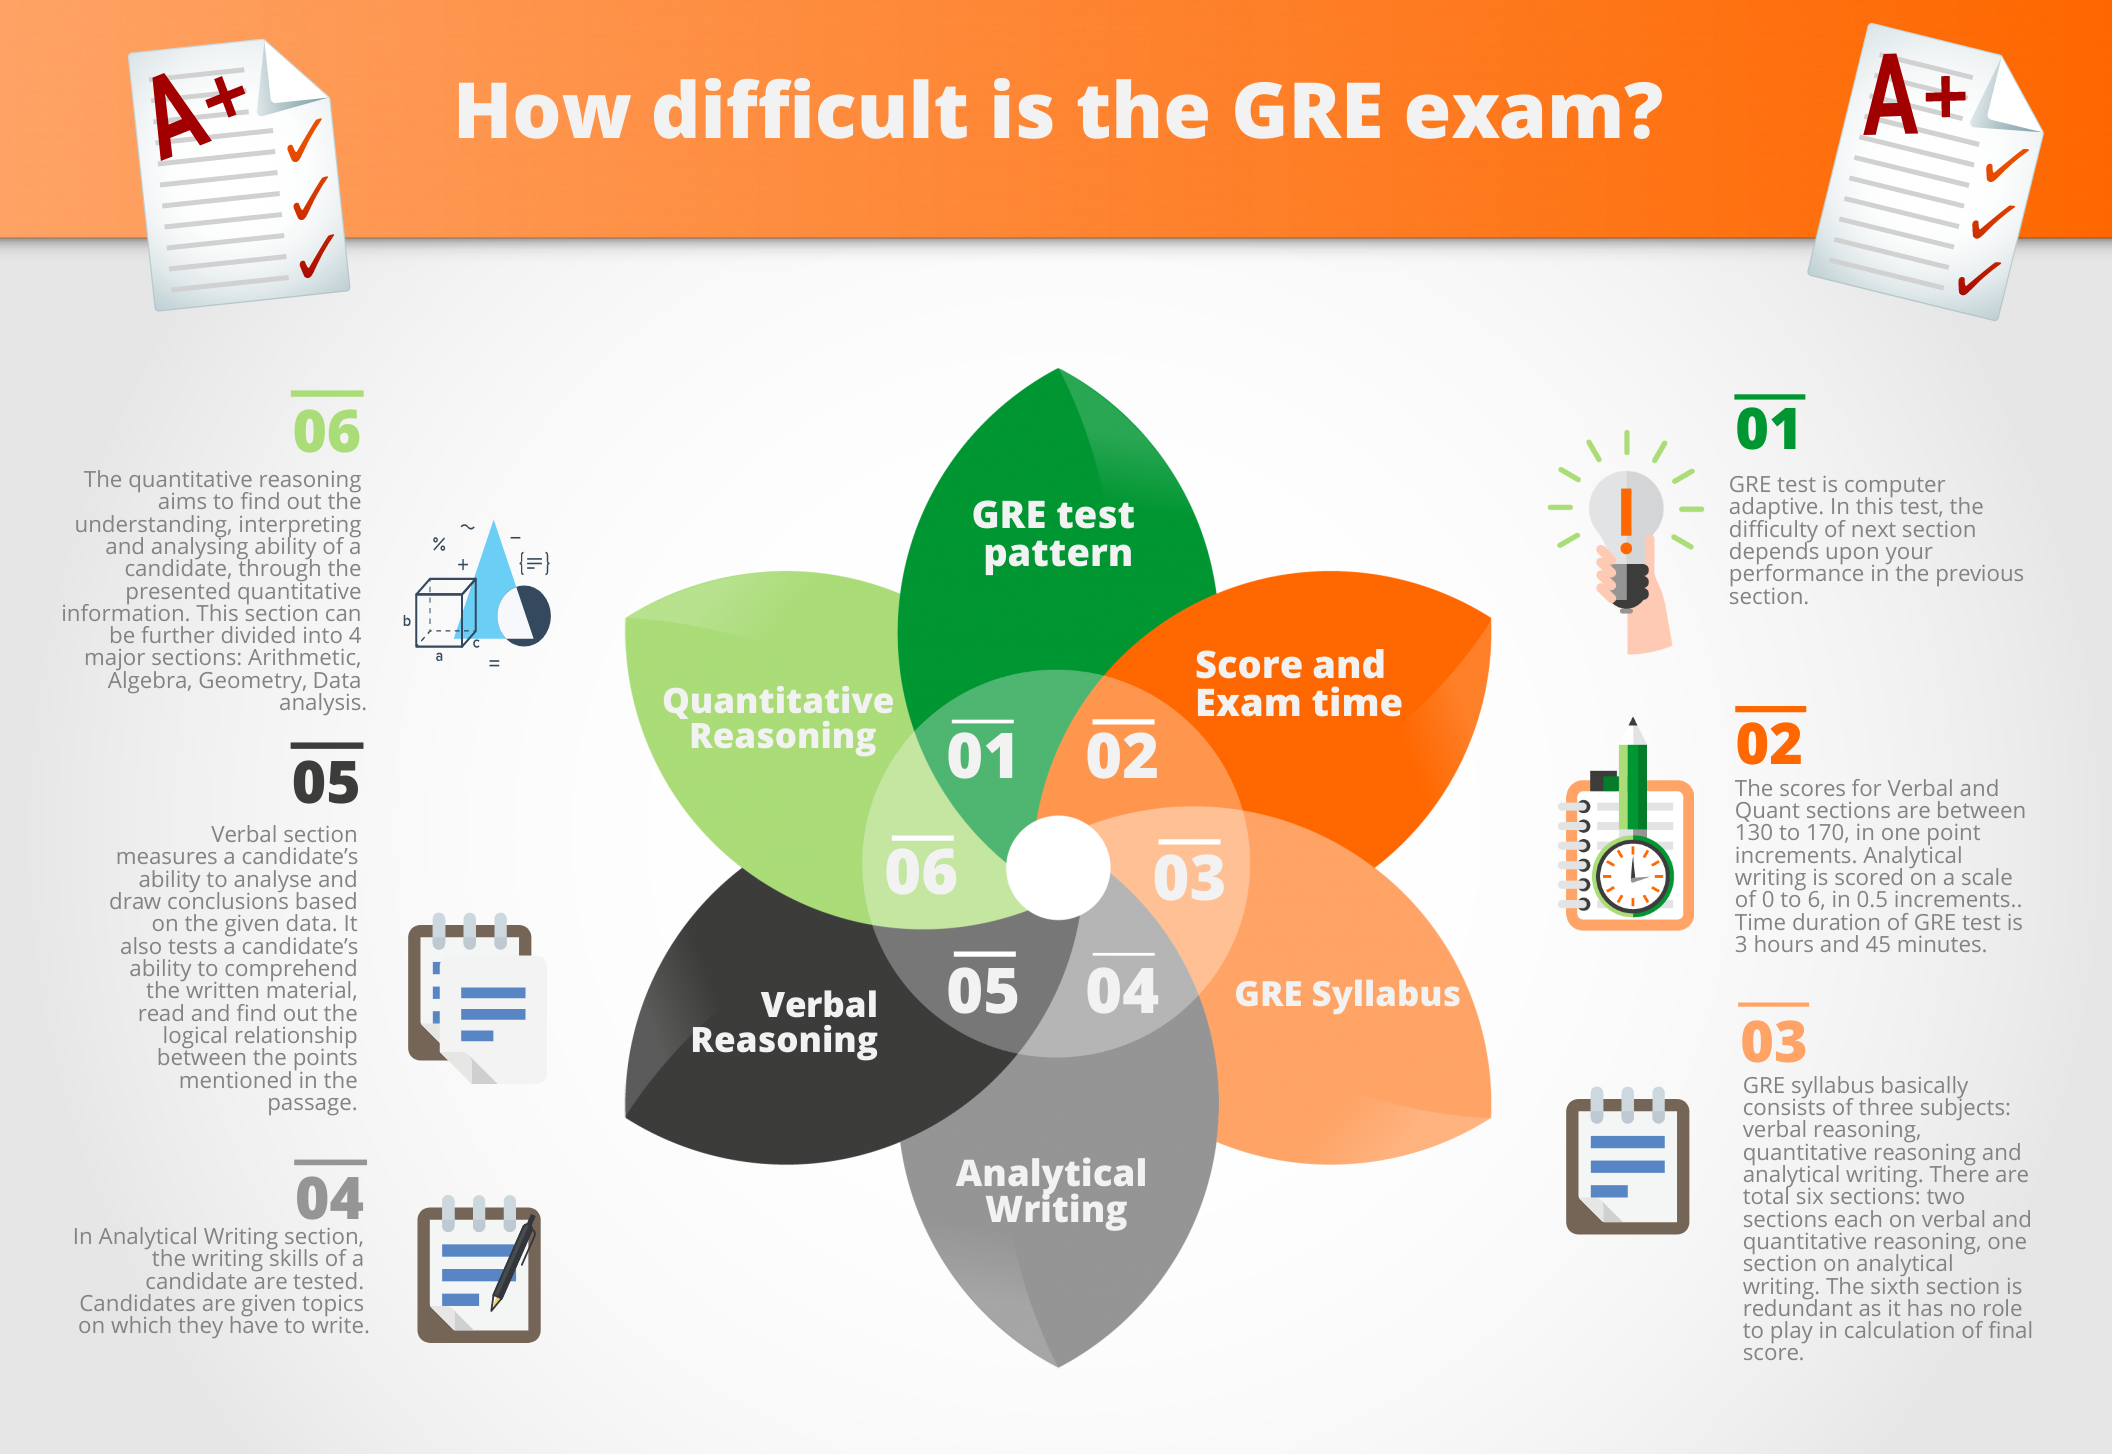 Is it difficult to crack the GRE exam?